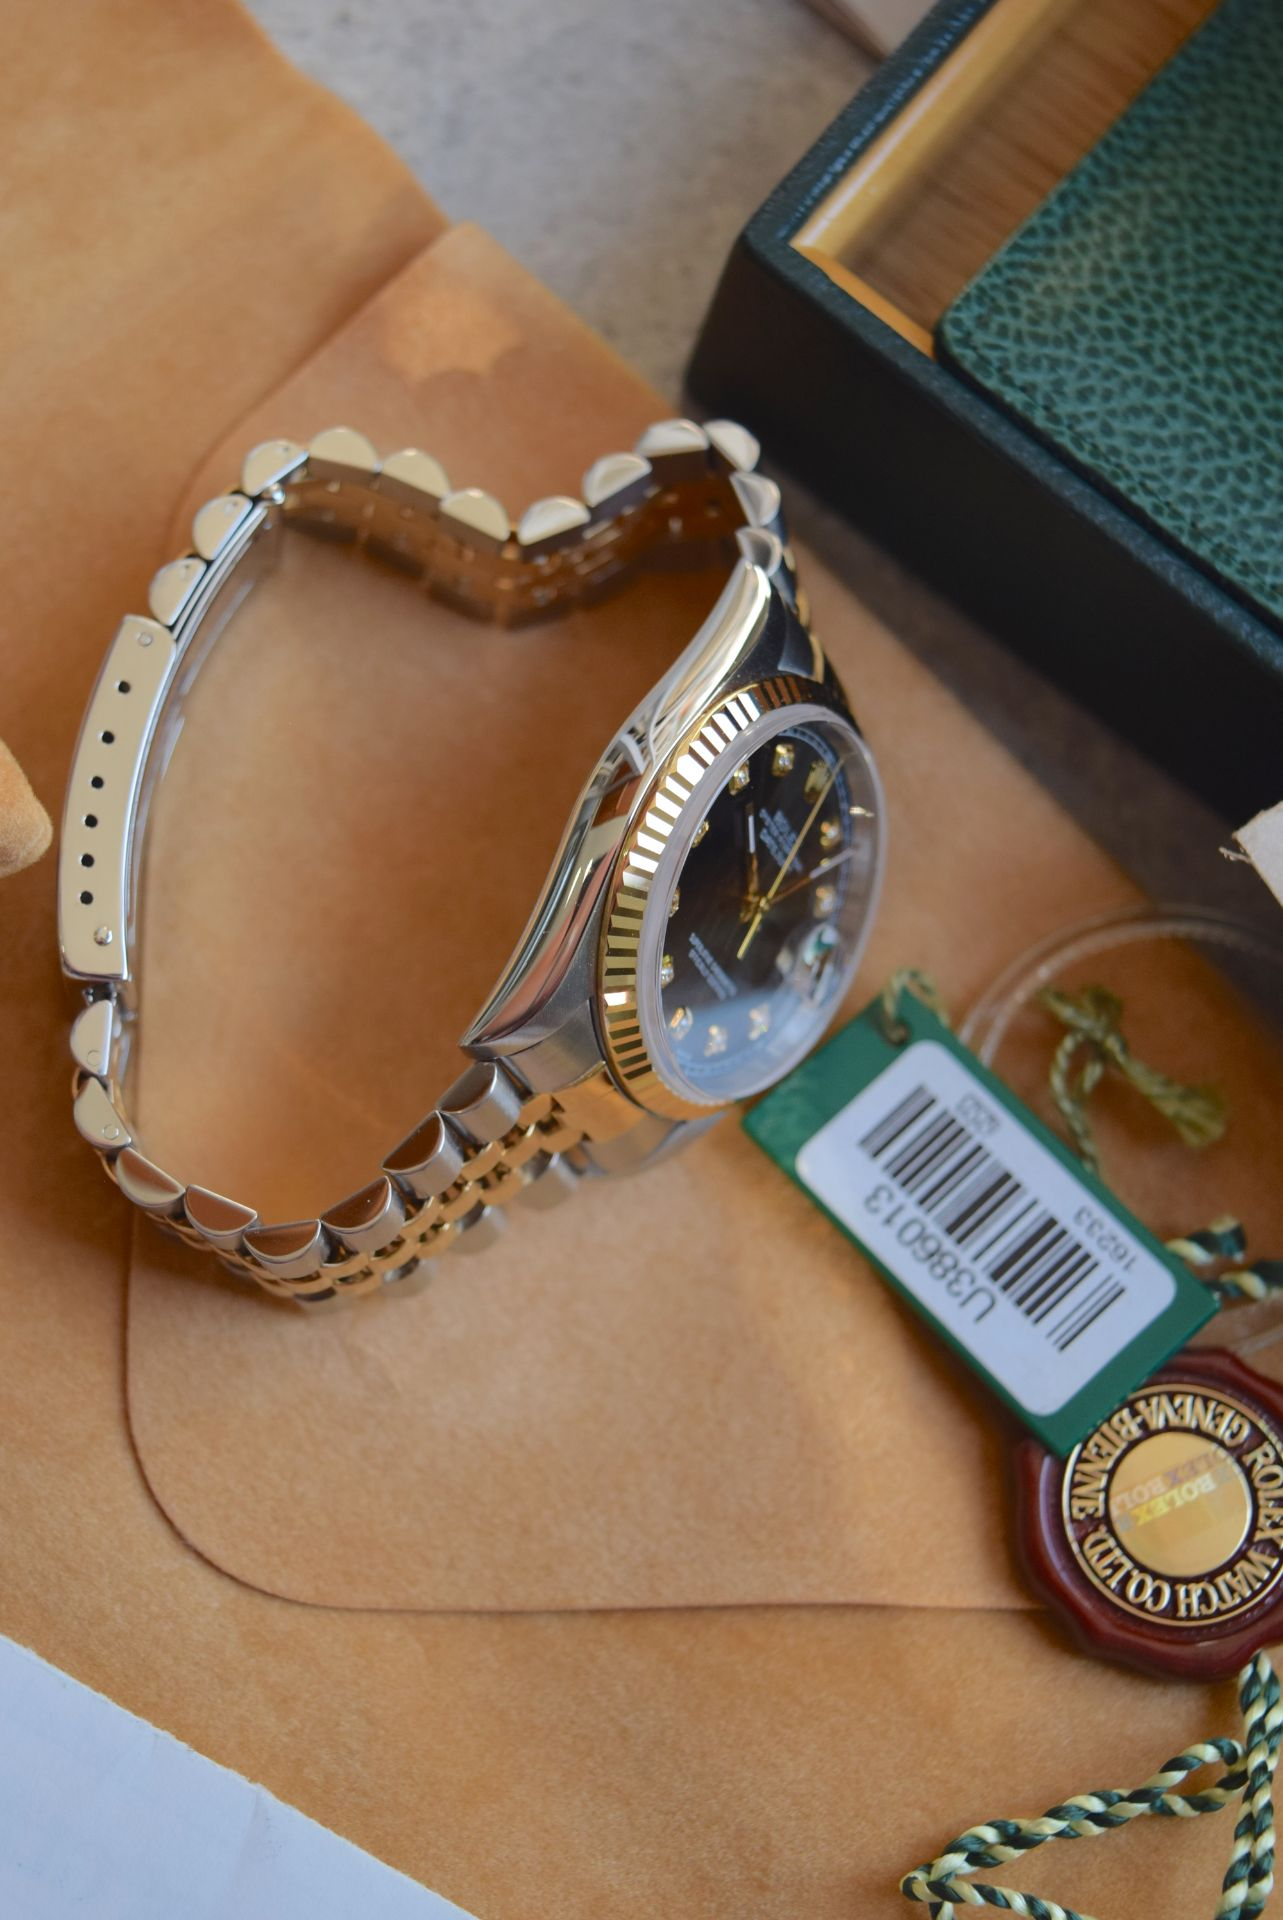 18CT GOLD/ STEEL ROLEX DATEJUST - 36MM, MENS (COMPLETE SET INC BOX, PAPERS, TAGS ETC) - Image 13 of 25